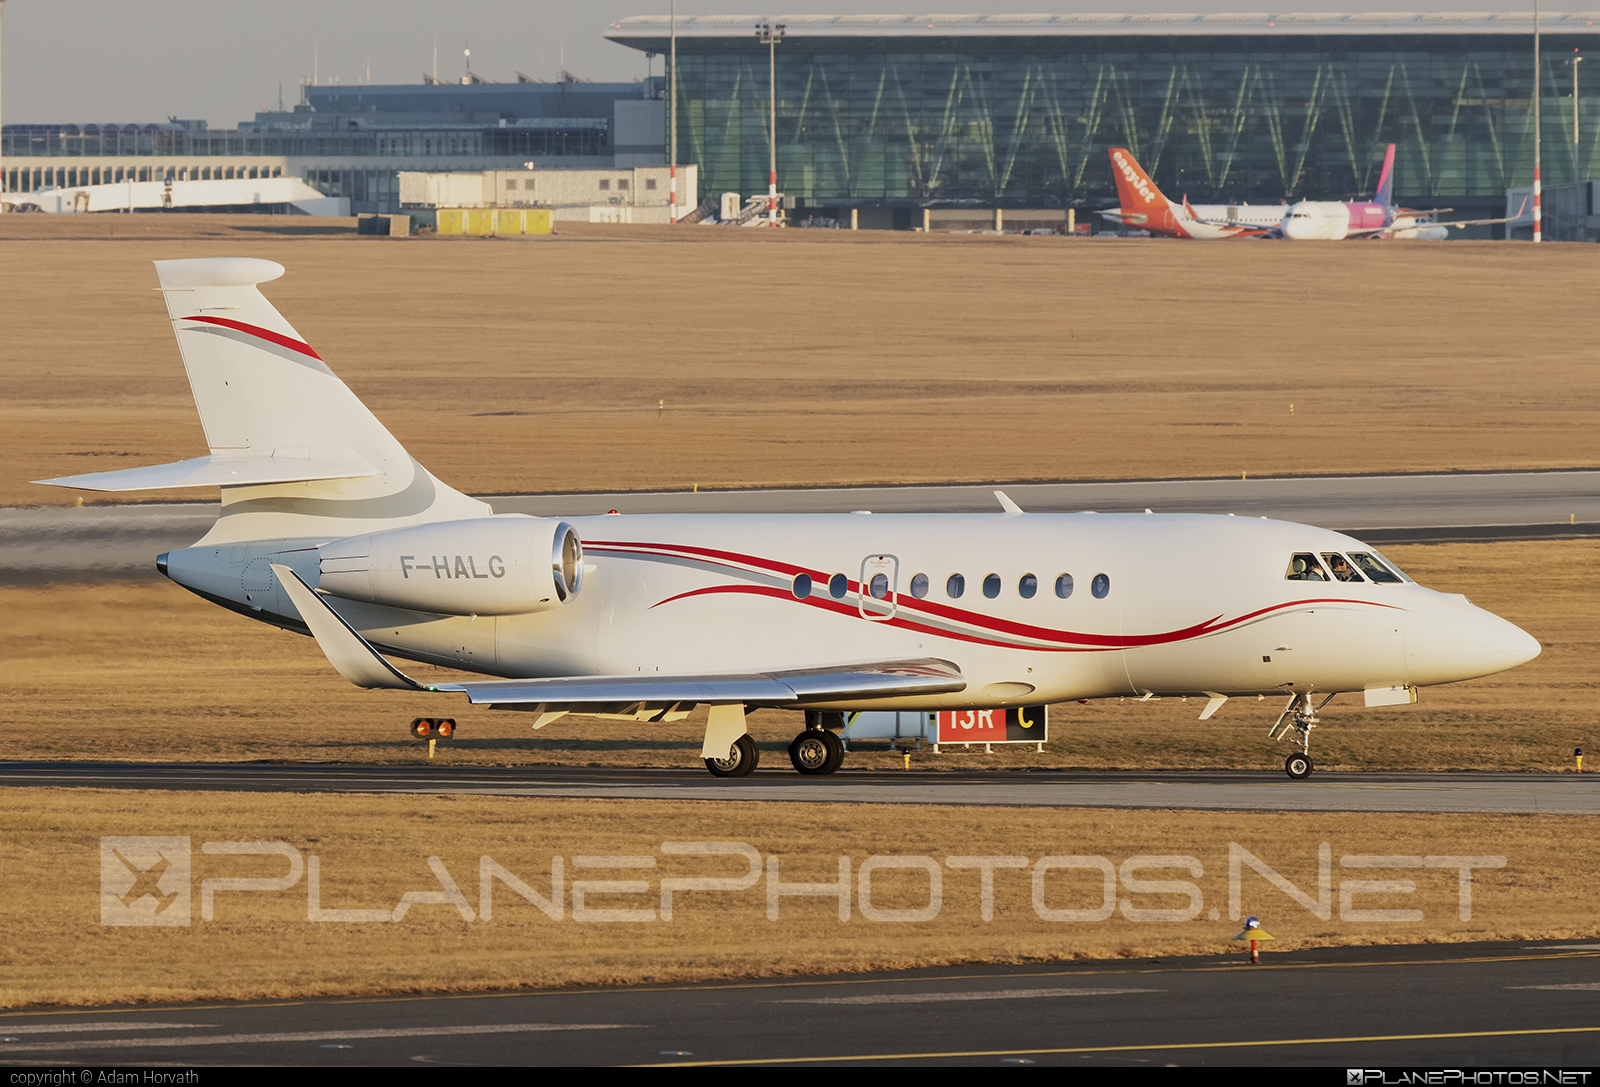 Dassault Falcon 2000LXS - F-HALG operated by AH Fleet Services #ahfleetservices #dassault #dassaultfalcon #dassaultfalcon2000 #dassaultfalcon2000lxs #falcon2000 #falcon2000lxs